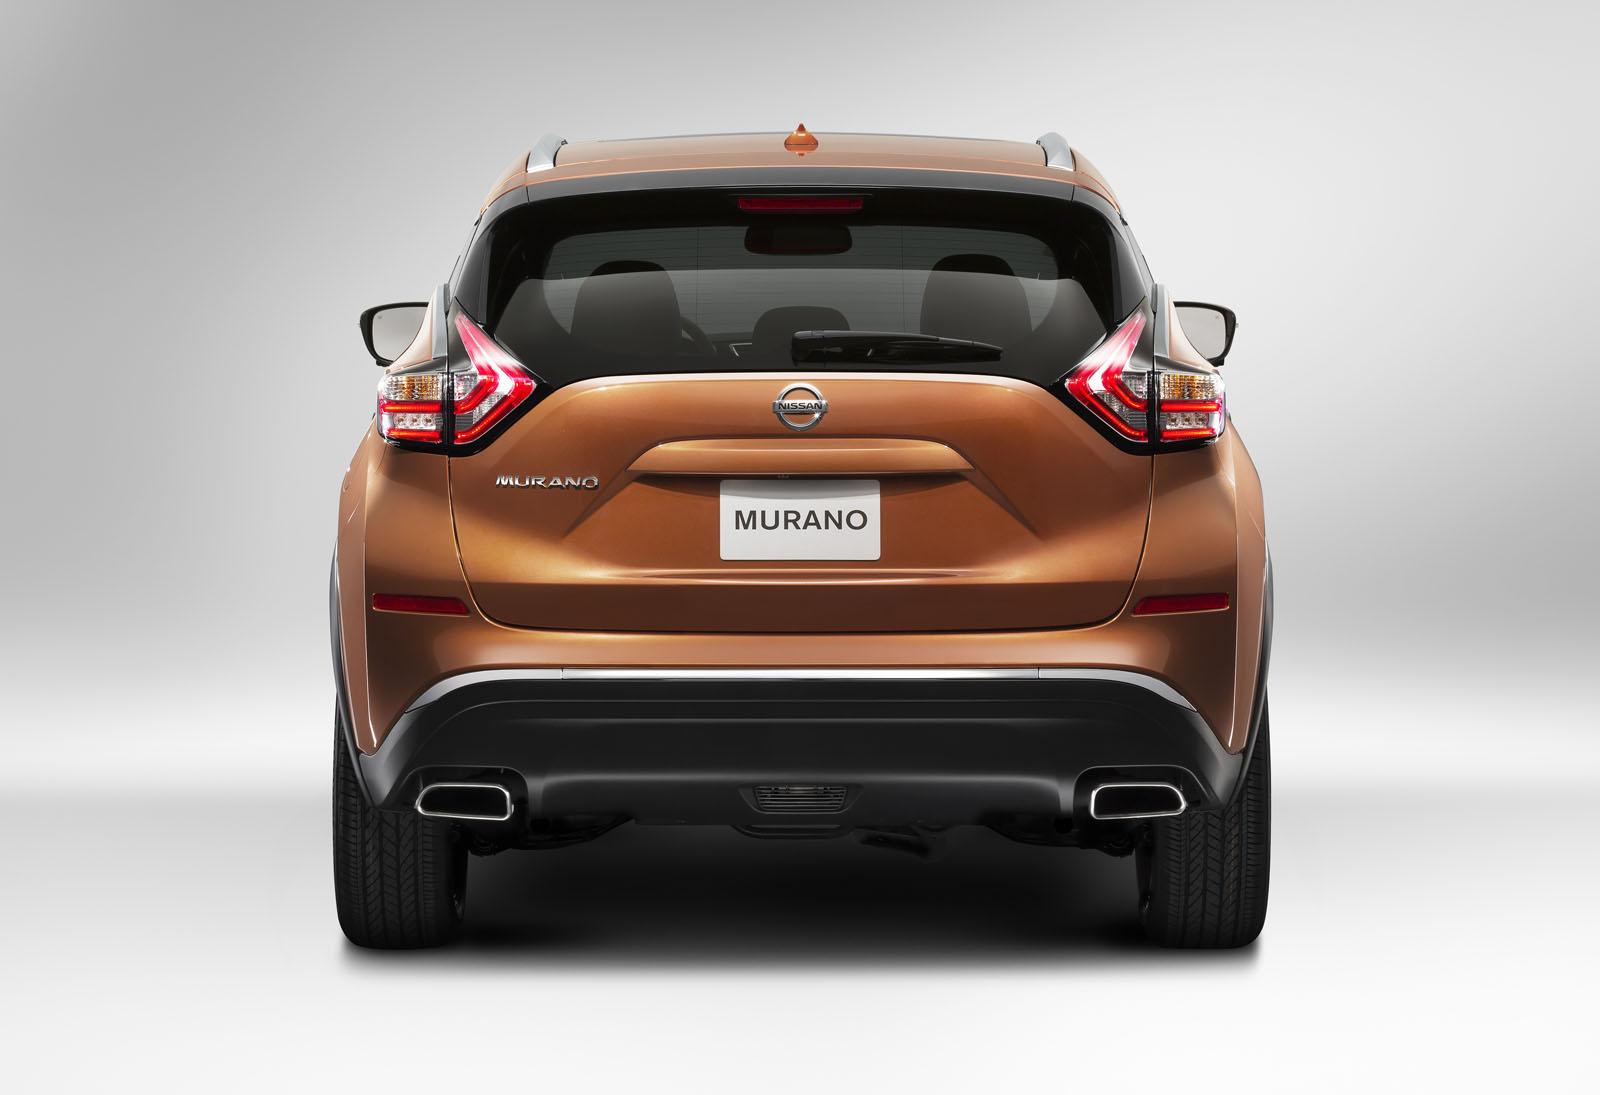 nissan cars news 2015 murano unwrapped ahead of new. Black Bedroom Furniture Sets. Home Design Ideas